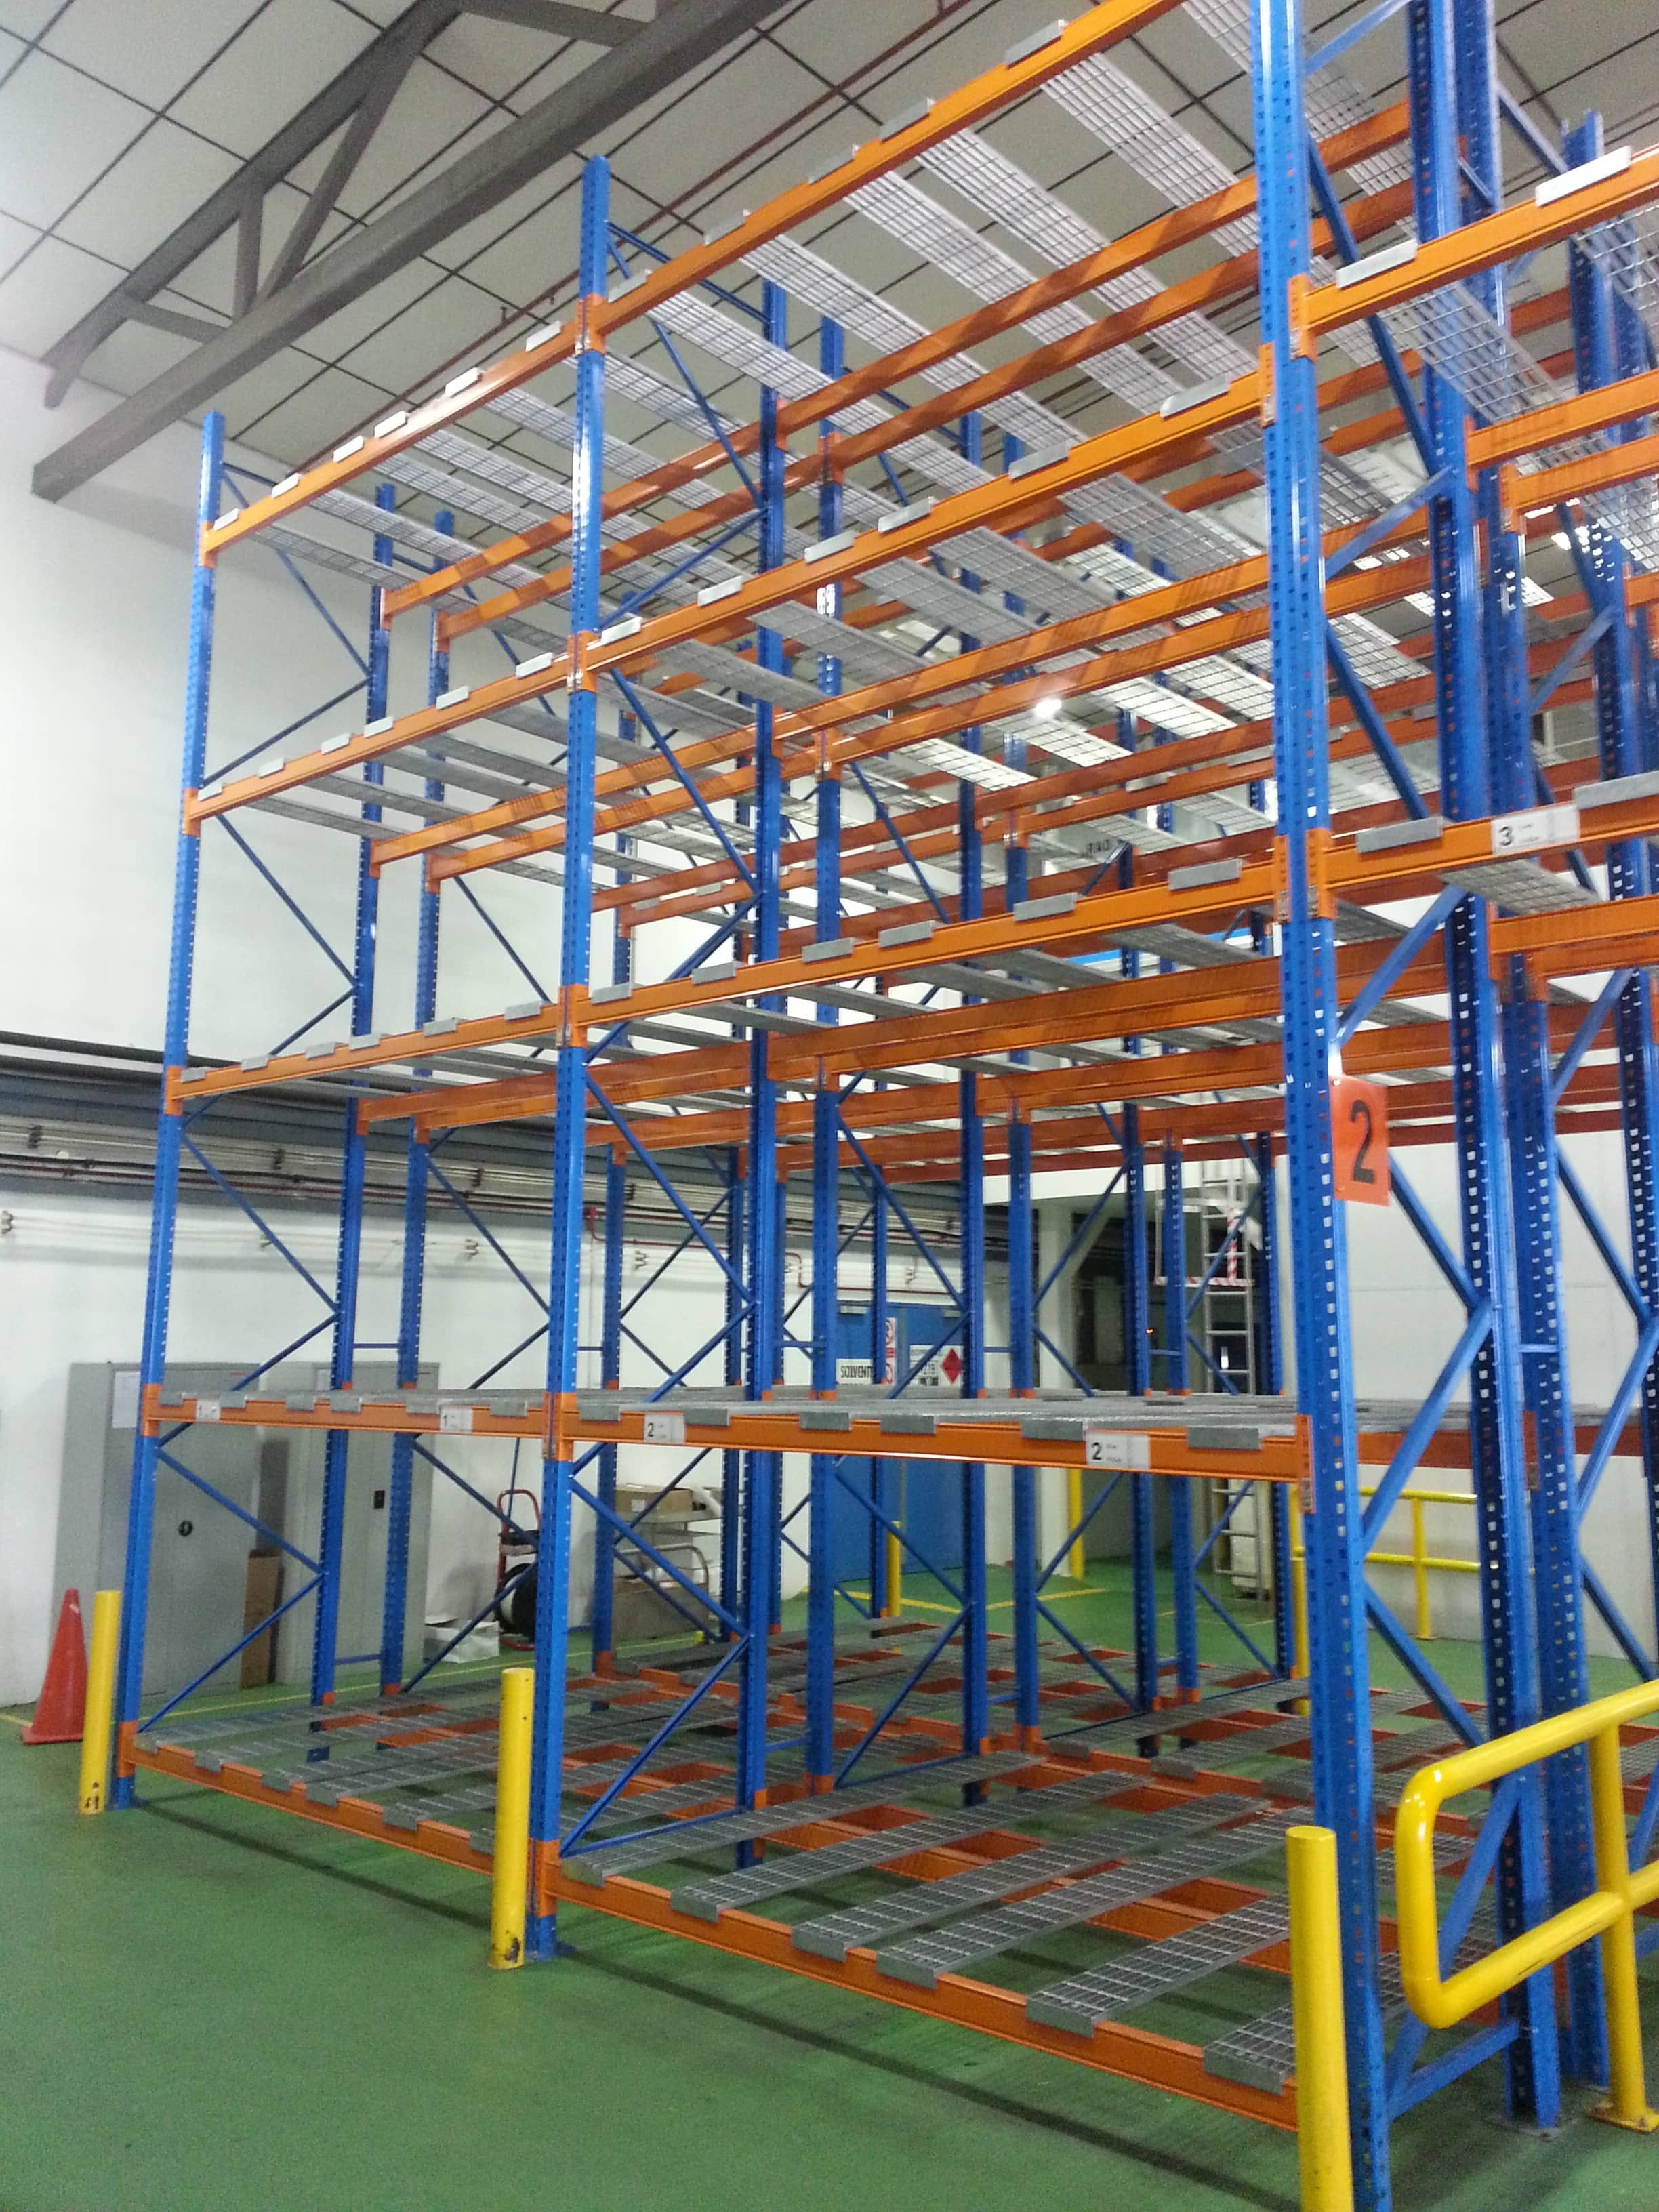 Mezzanine Ladder Storage